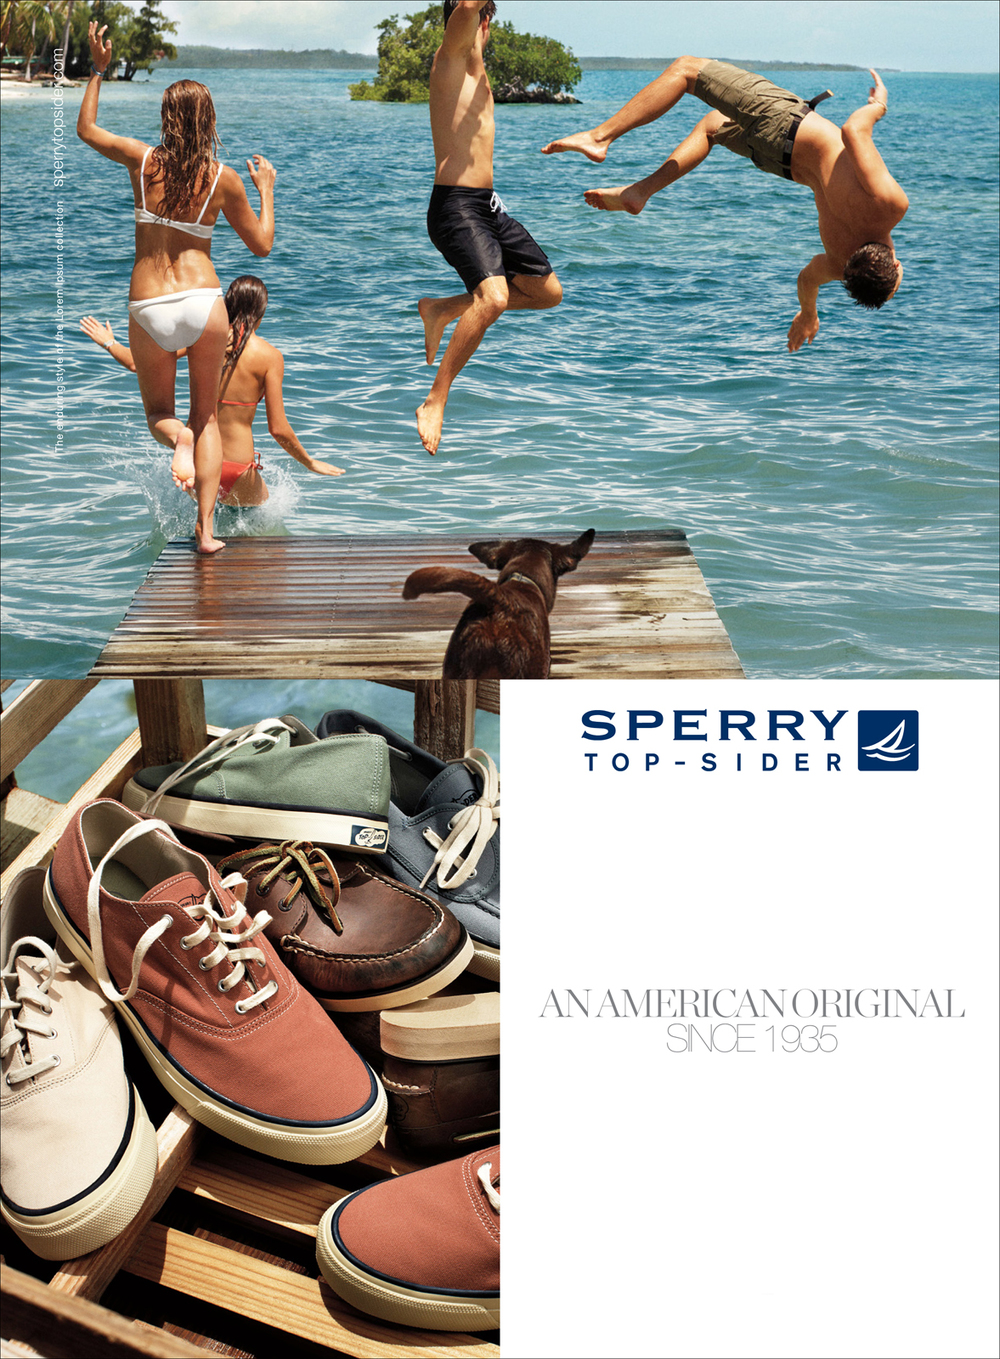 SC_ADVERTISING_SPERRY_KEYS_SS_2010_16.jpg